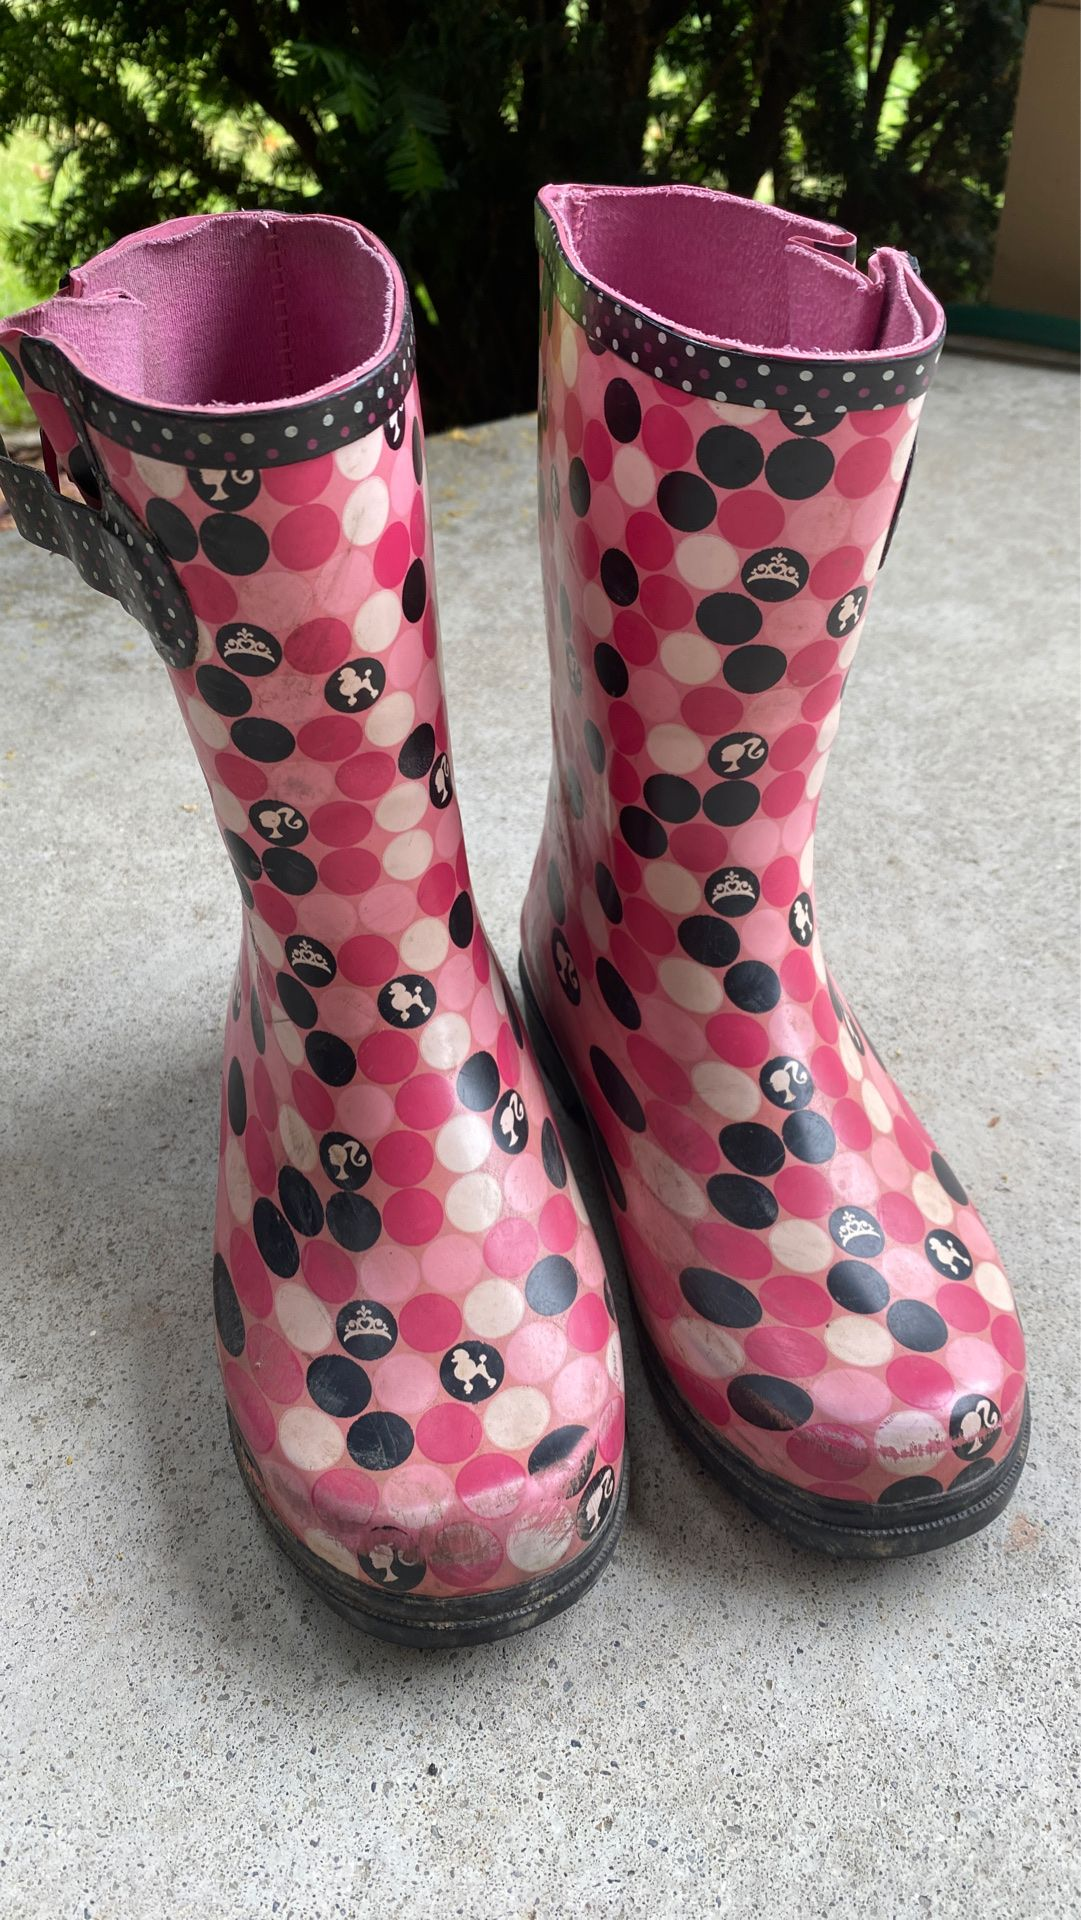 Barbie rain boots size 13/1 youth